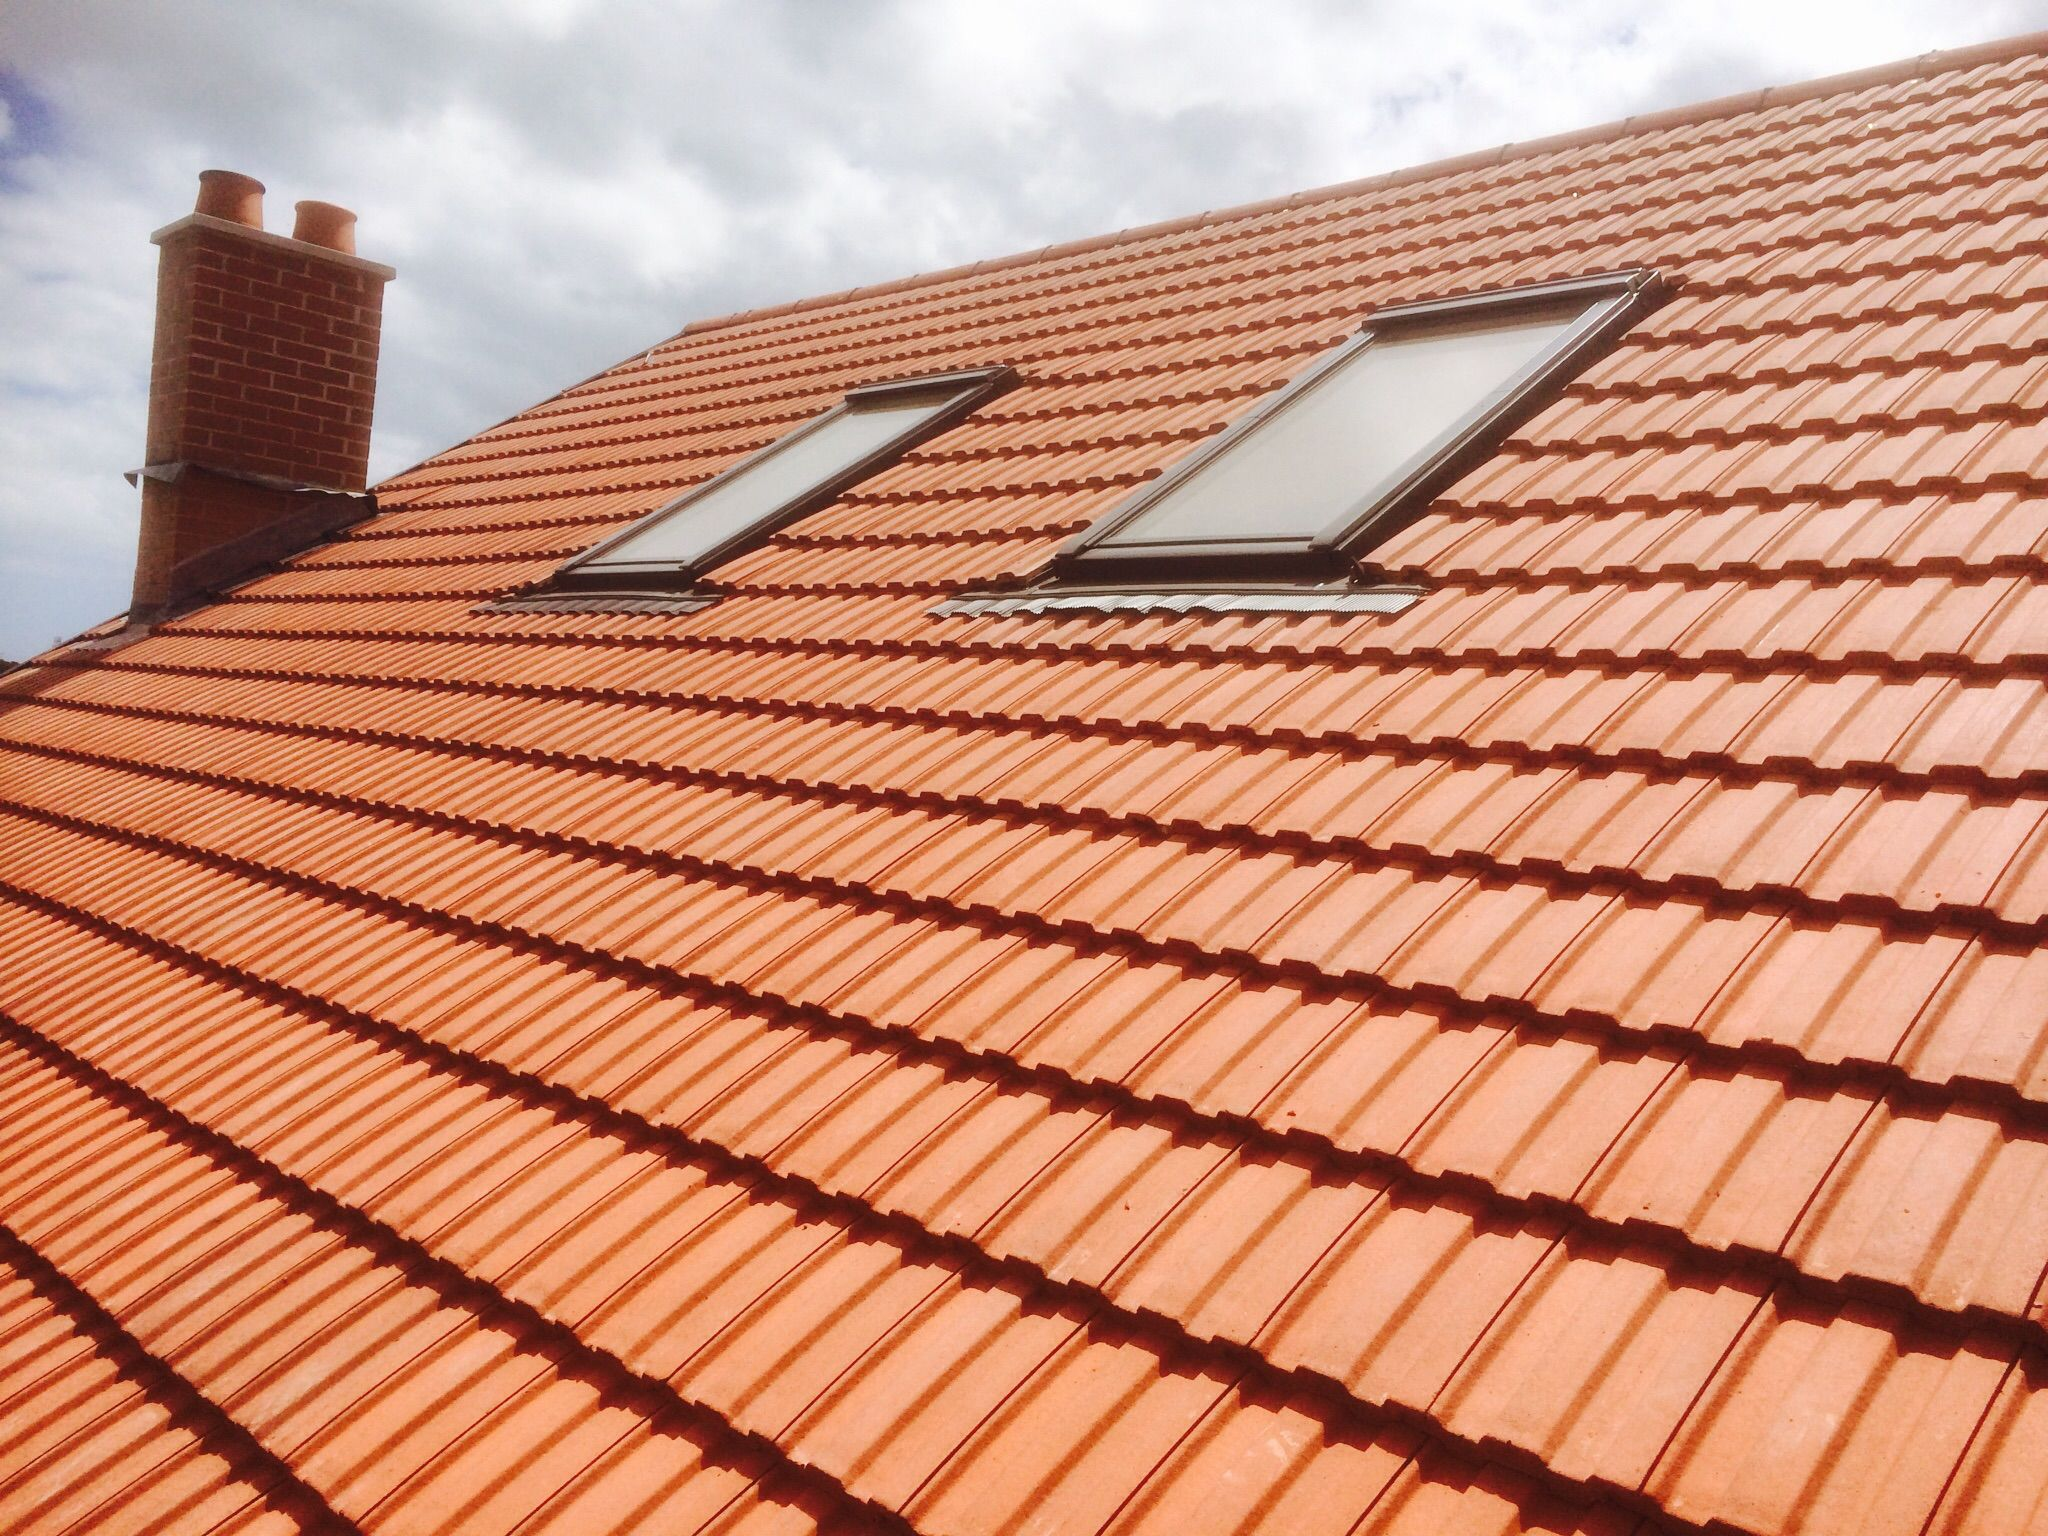 New Roof Finished In Redland Terracotta 49 Tiles Low Profile Design